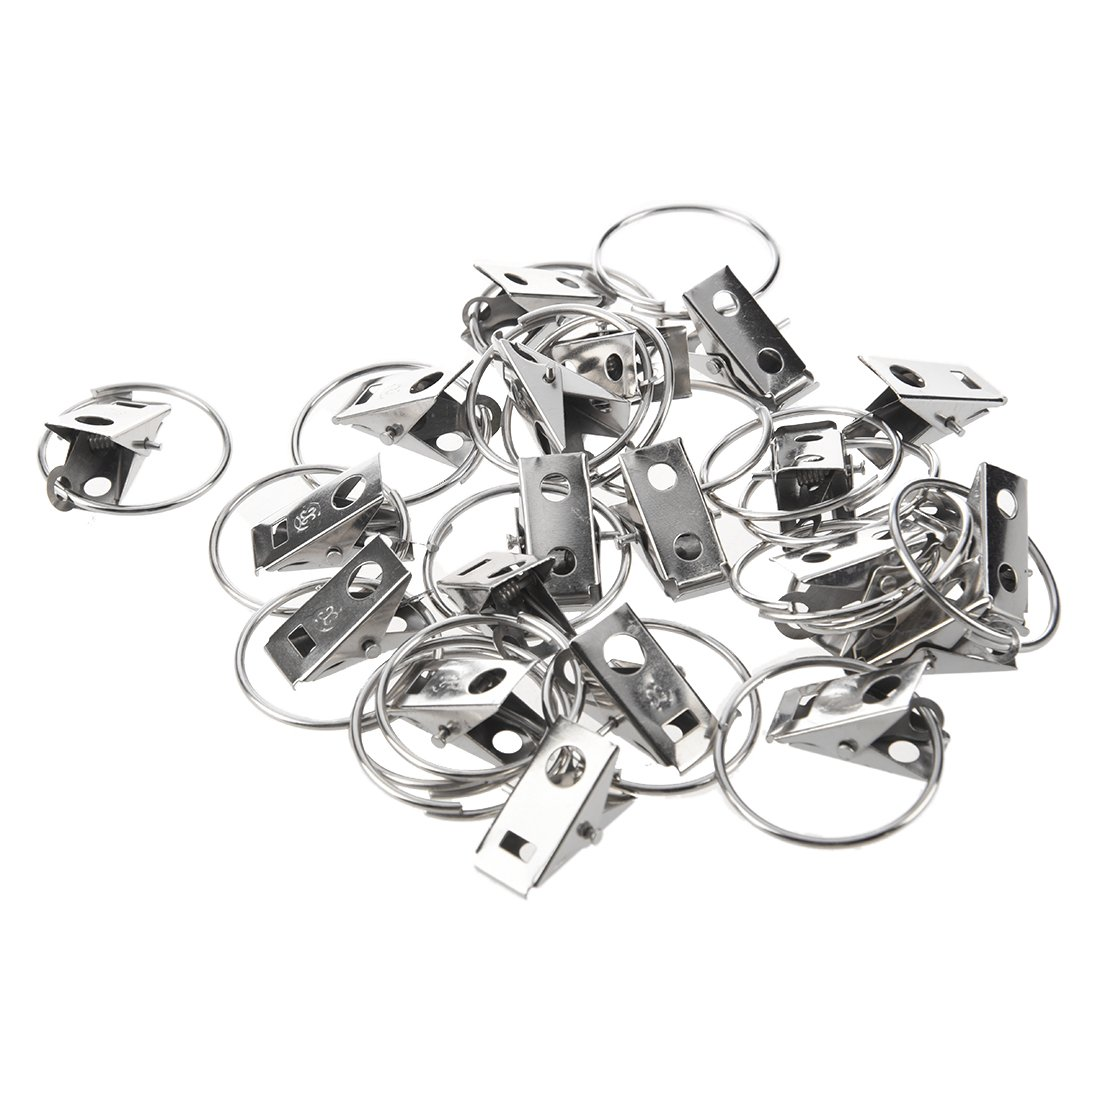 Curtains clips - SODIAL(R)20 pcs clip Rings for Curtain Rod Curtains Clips. SODIAL (R) TRTA11A